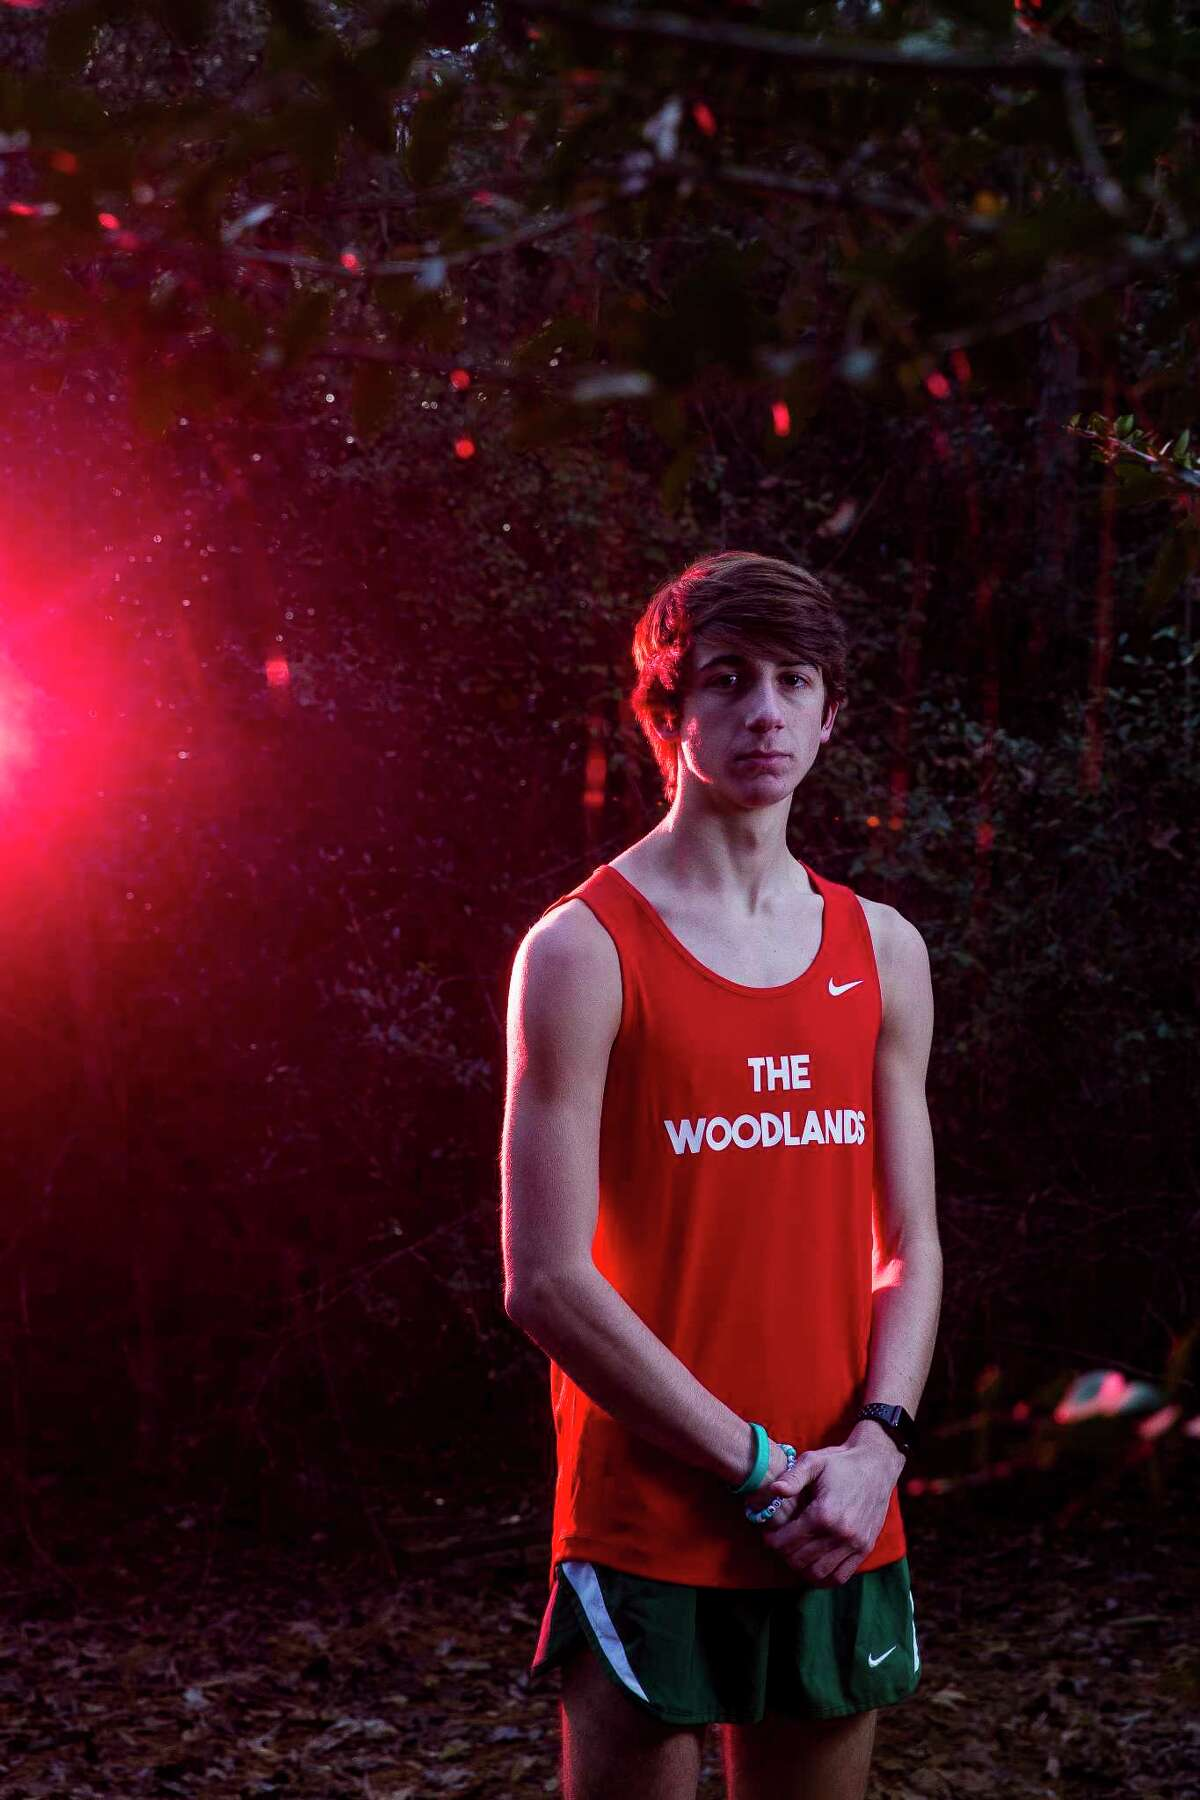 CHRONICLE'S ALL-GREATER HOUSTON CROSS COUNTRY TEAM Boys Runner of the YearGavin HoffpauirThe Woodlands boys cross country team went into the season determined to honor fallen teammate Tanner Noble, who died in July after collapsing during a mountain biking trip. Mission accomplished. The Highlanders claimed their third consecutive state title and 20th overall, and senior Gavin Hoffpauir led the way, finishing second individually with a time of 15 minutes, 8.84 seconds, making him the Chronicle's All-Greater Houston Boys Cross Country Runner of the Year.